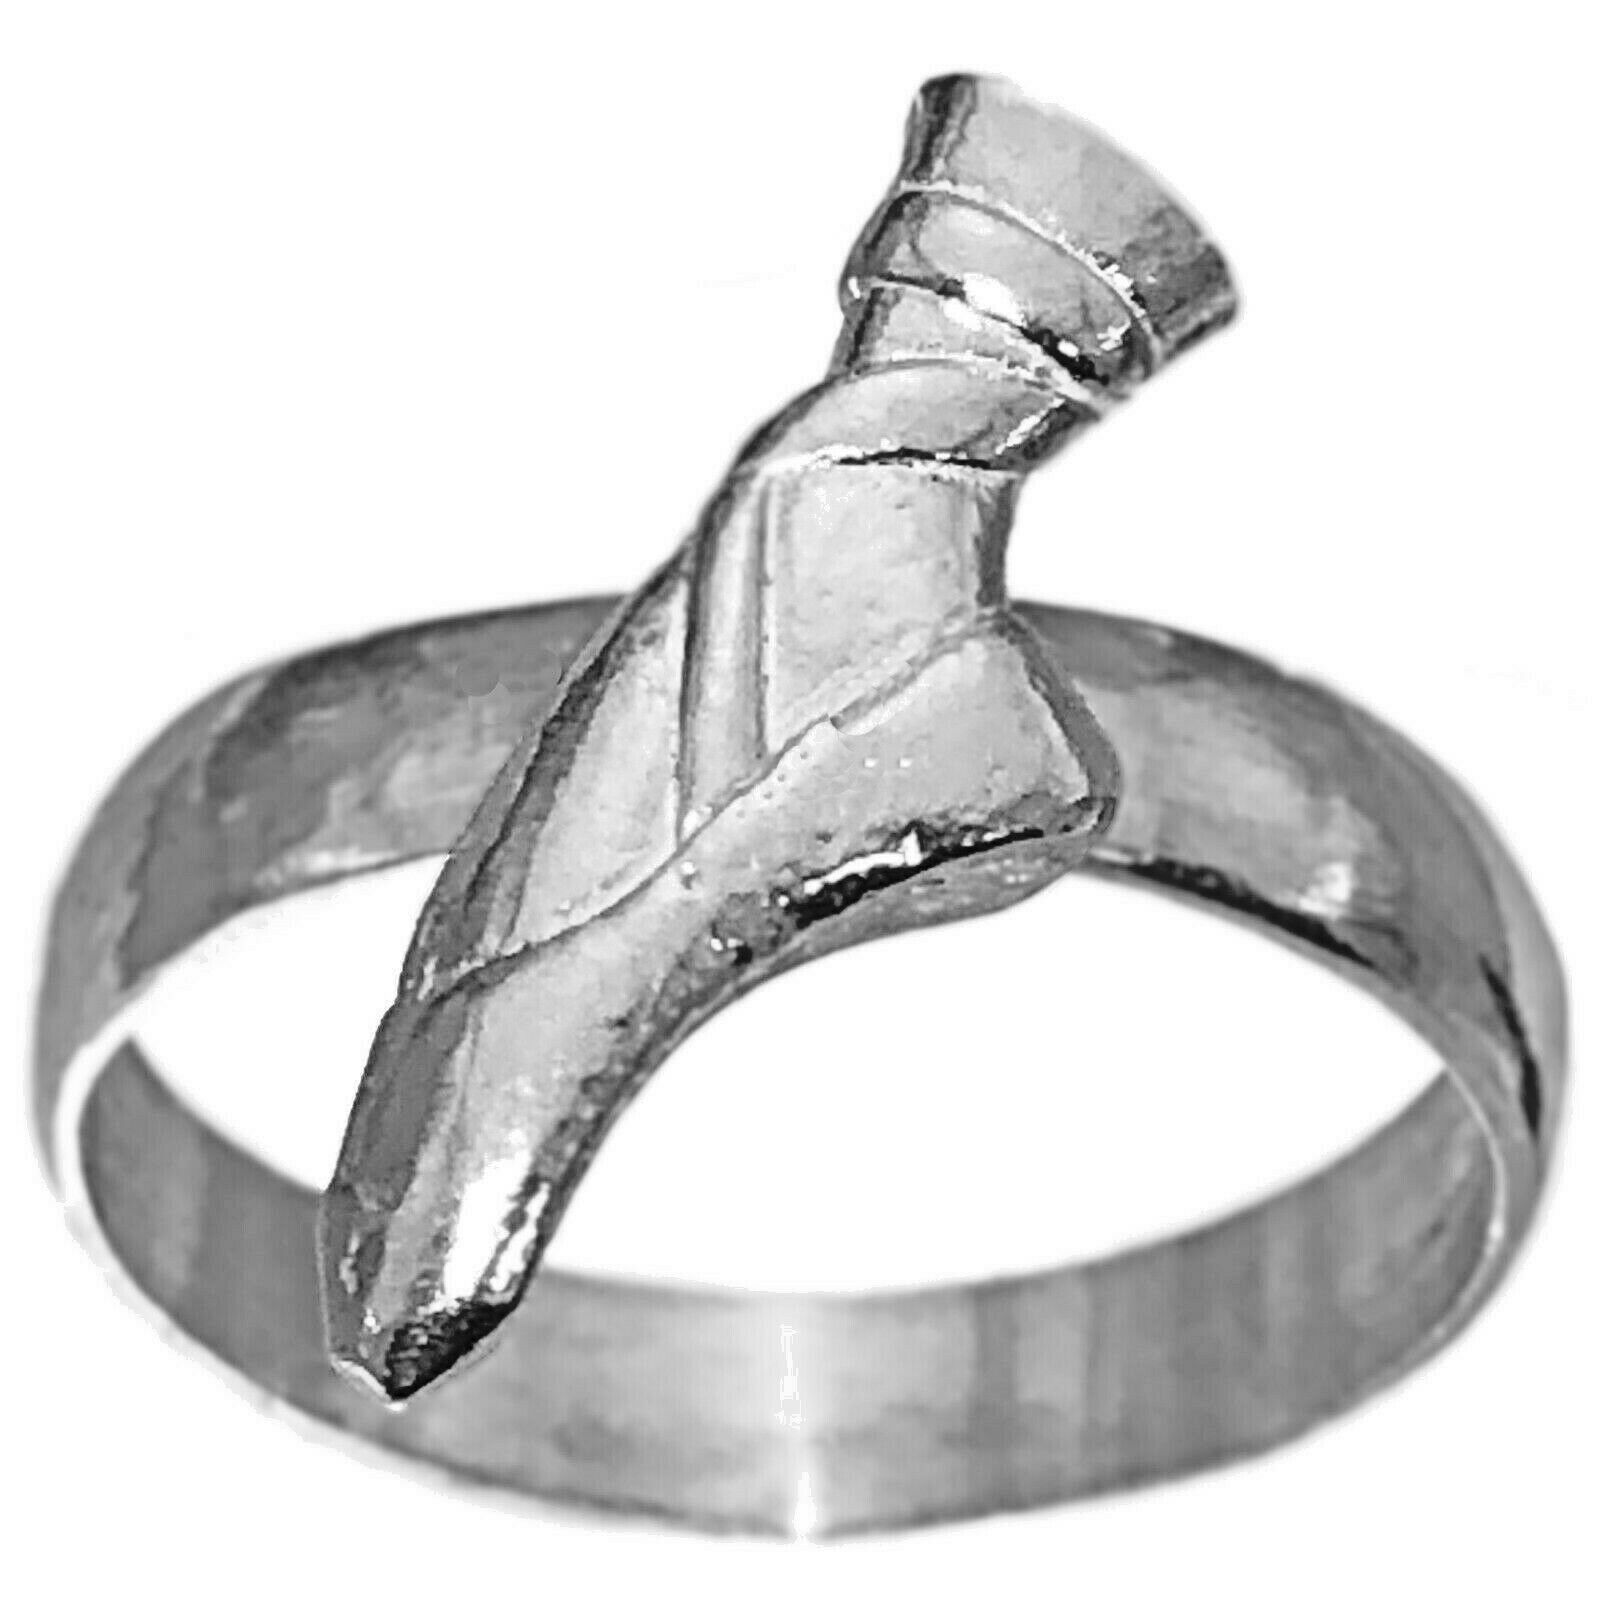 Sterling Silver 925 Dance Ballerina Ring Ballet slipper shoe Jewelry Pick Size